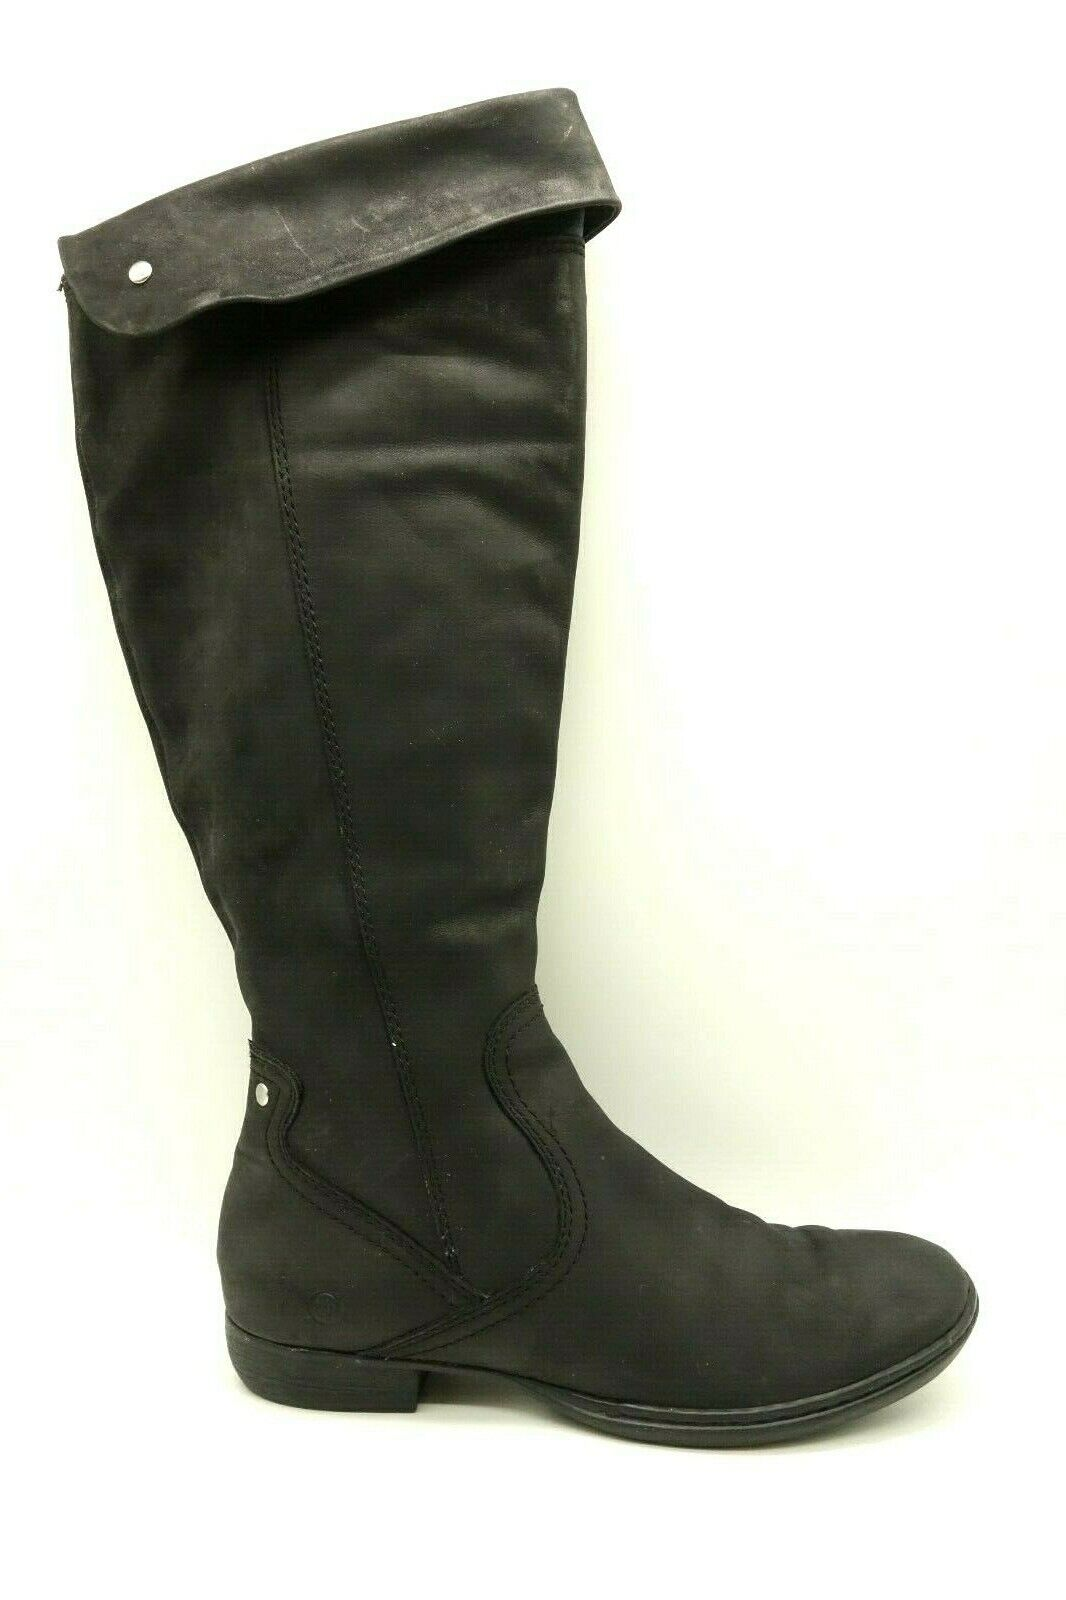 Born Black Leather Tall Casual Side Zipper Riding Boots Women's 8.5   40 M